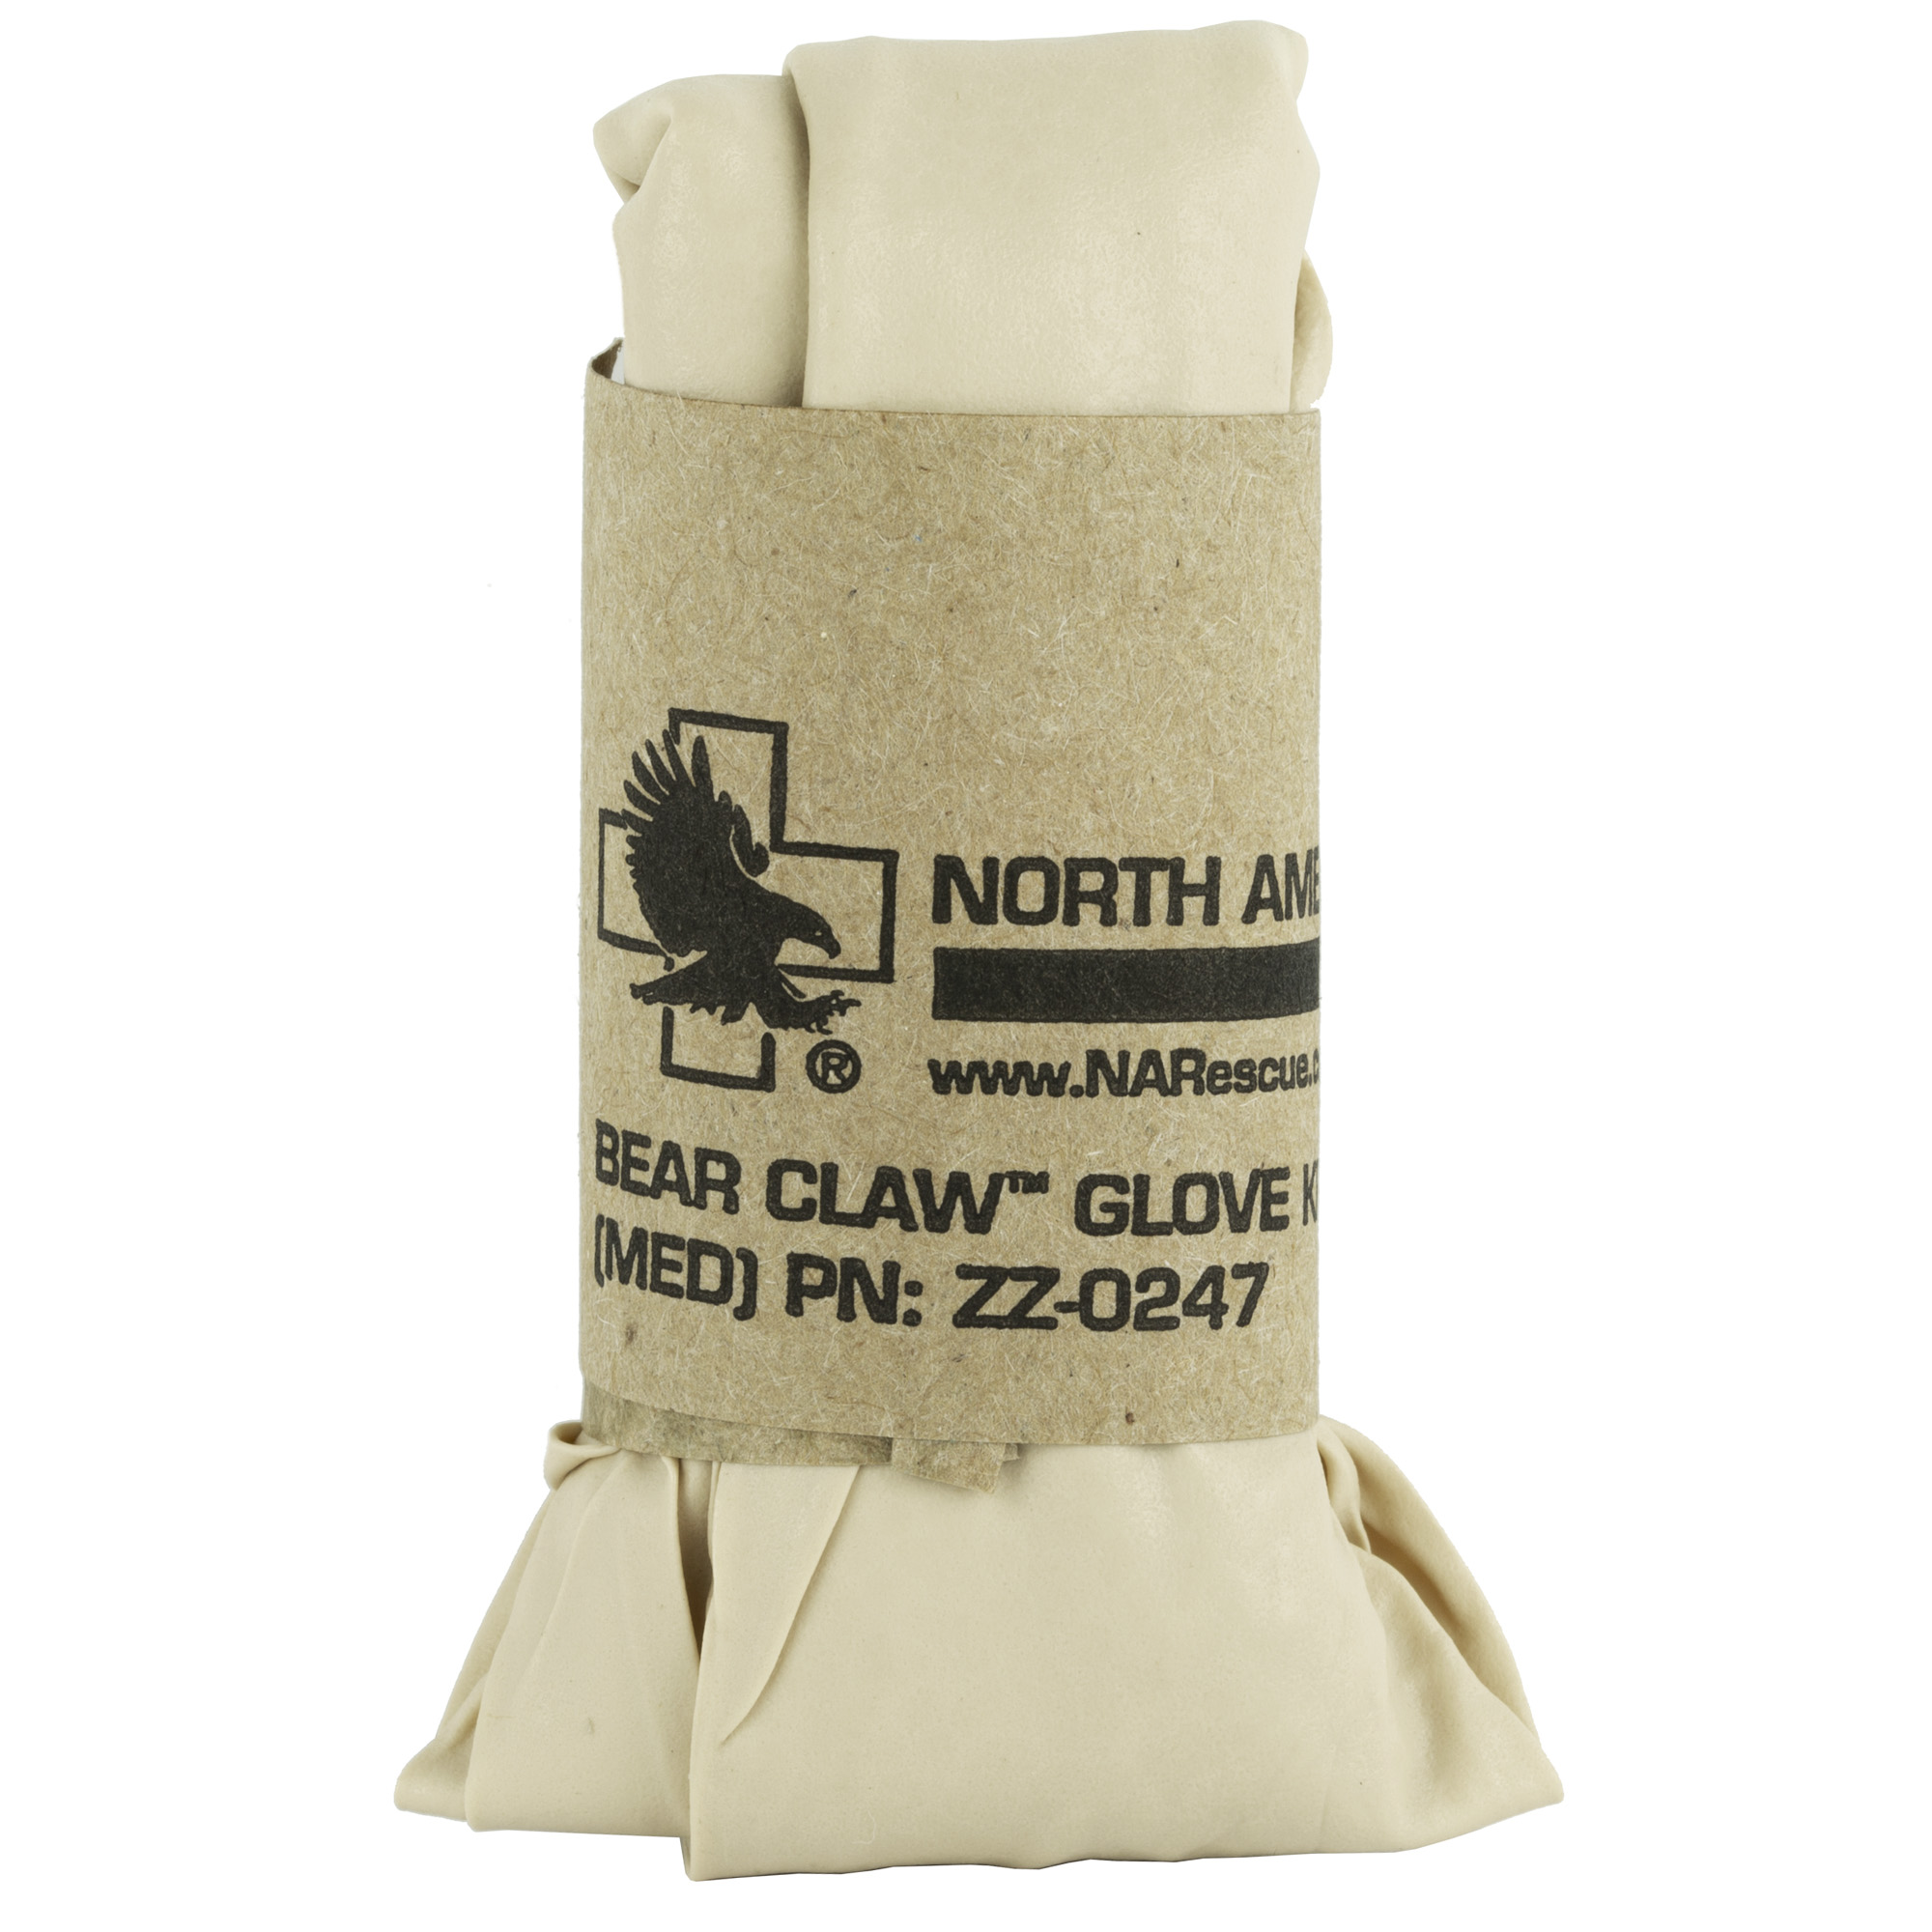 "Bear Claw Ultimate Nitrile gloves are made of 100% Nitrile material which is free of the allergens found in standard latex gloves. They are engineered to the our users high performance by offering both maximum protection and unsurpassed tactile sensitivity. This careful attention to detail includes textured fingertips to help with fine motor skills"" beaded cuffs for quick and easy donning and a thickened palm for durability and reliability. These ambidextrous gloves are packaged 25 pairs per bag. Designed for single-use only."